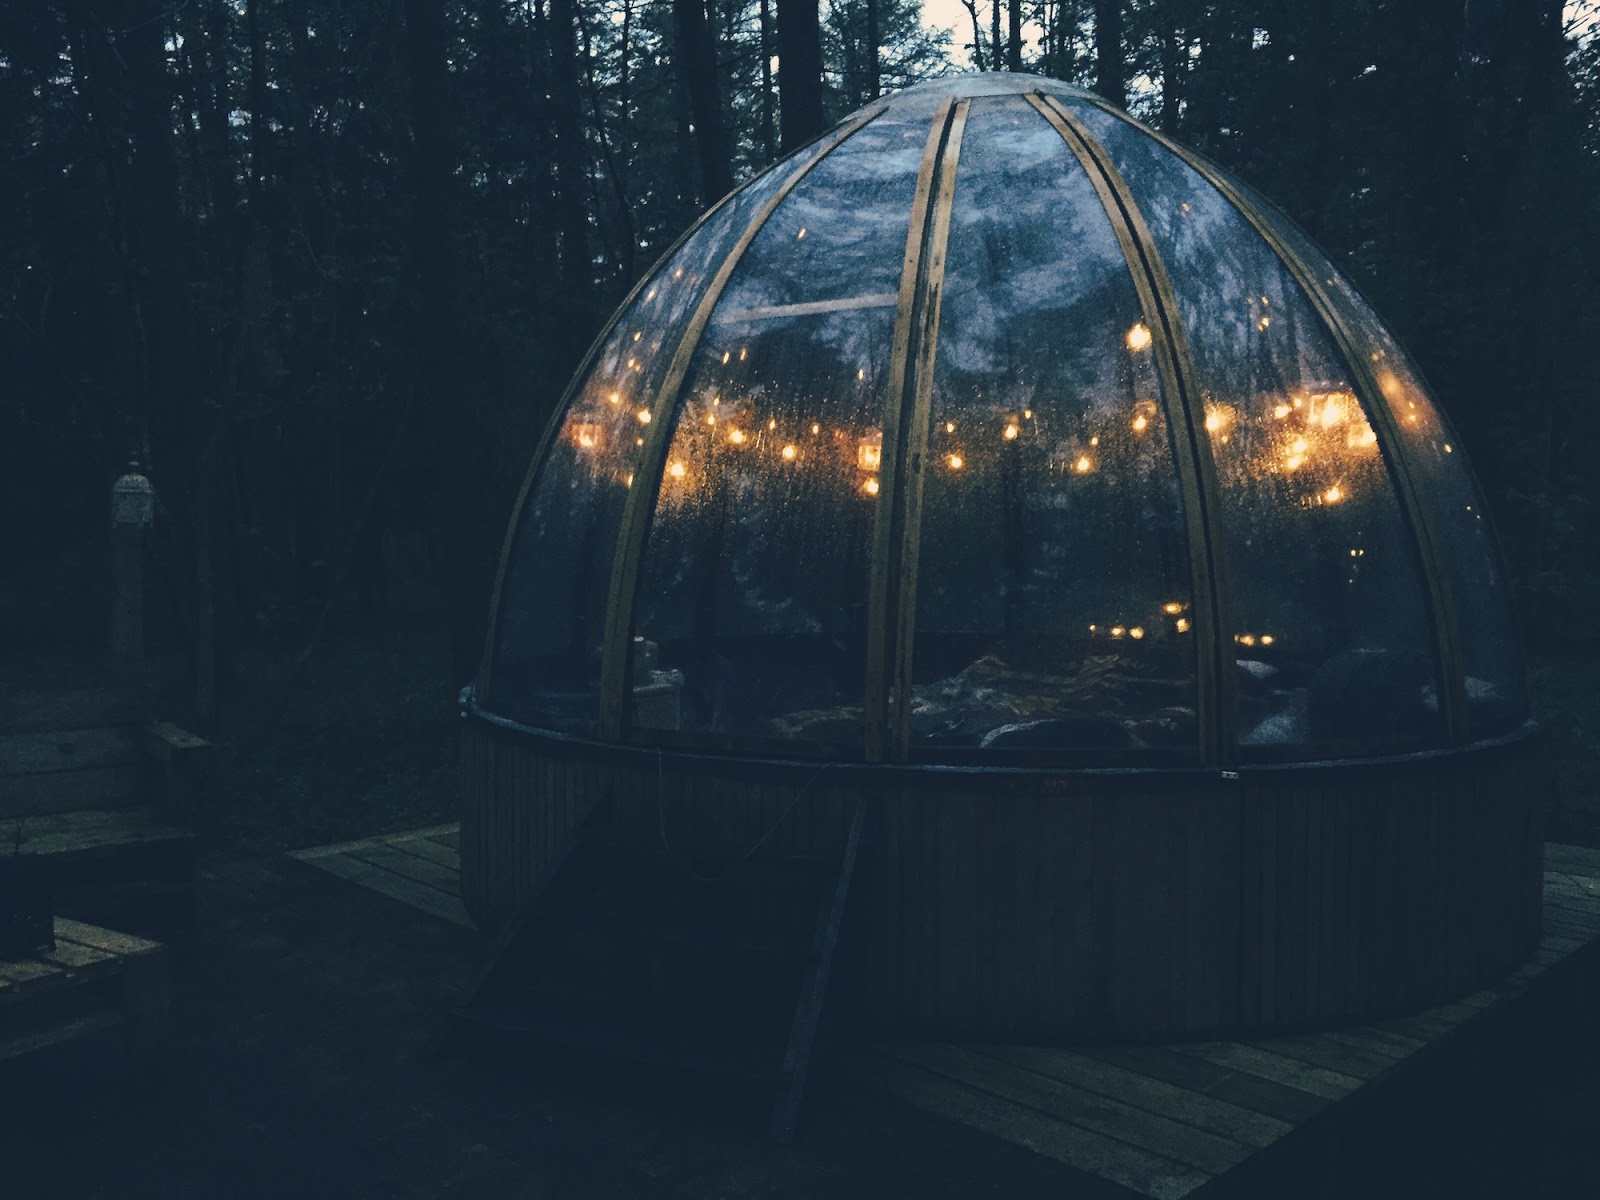 Glamping at Camp Katur in the Magical Woodland Hide Unidome